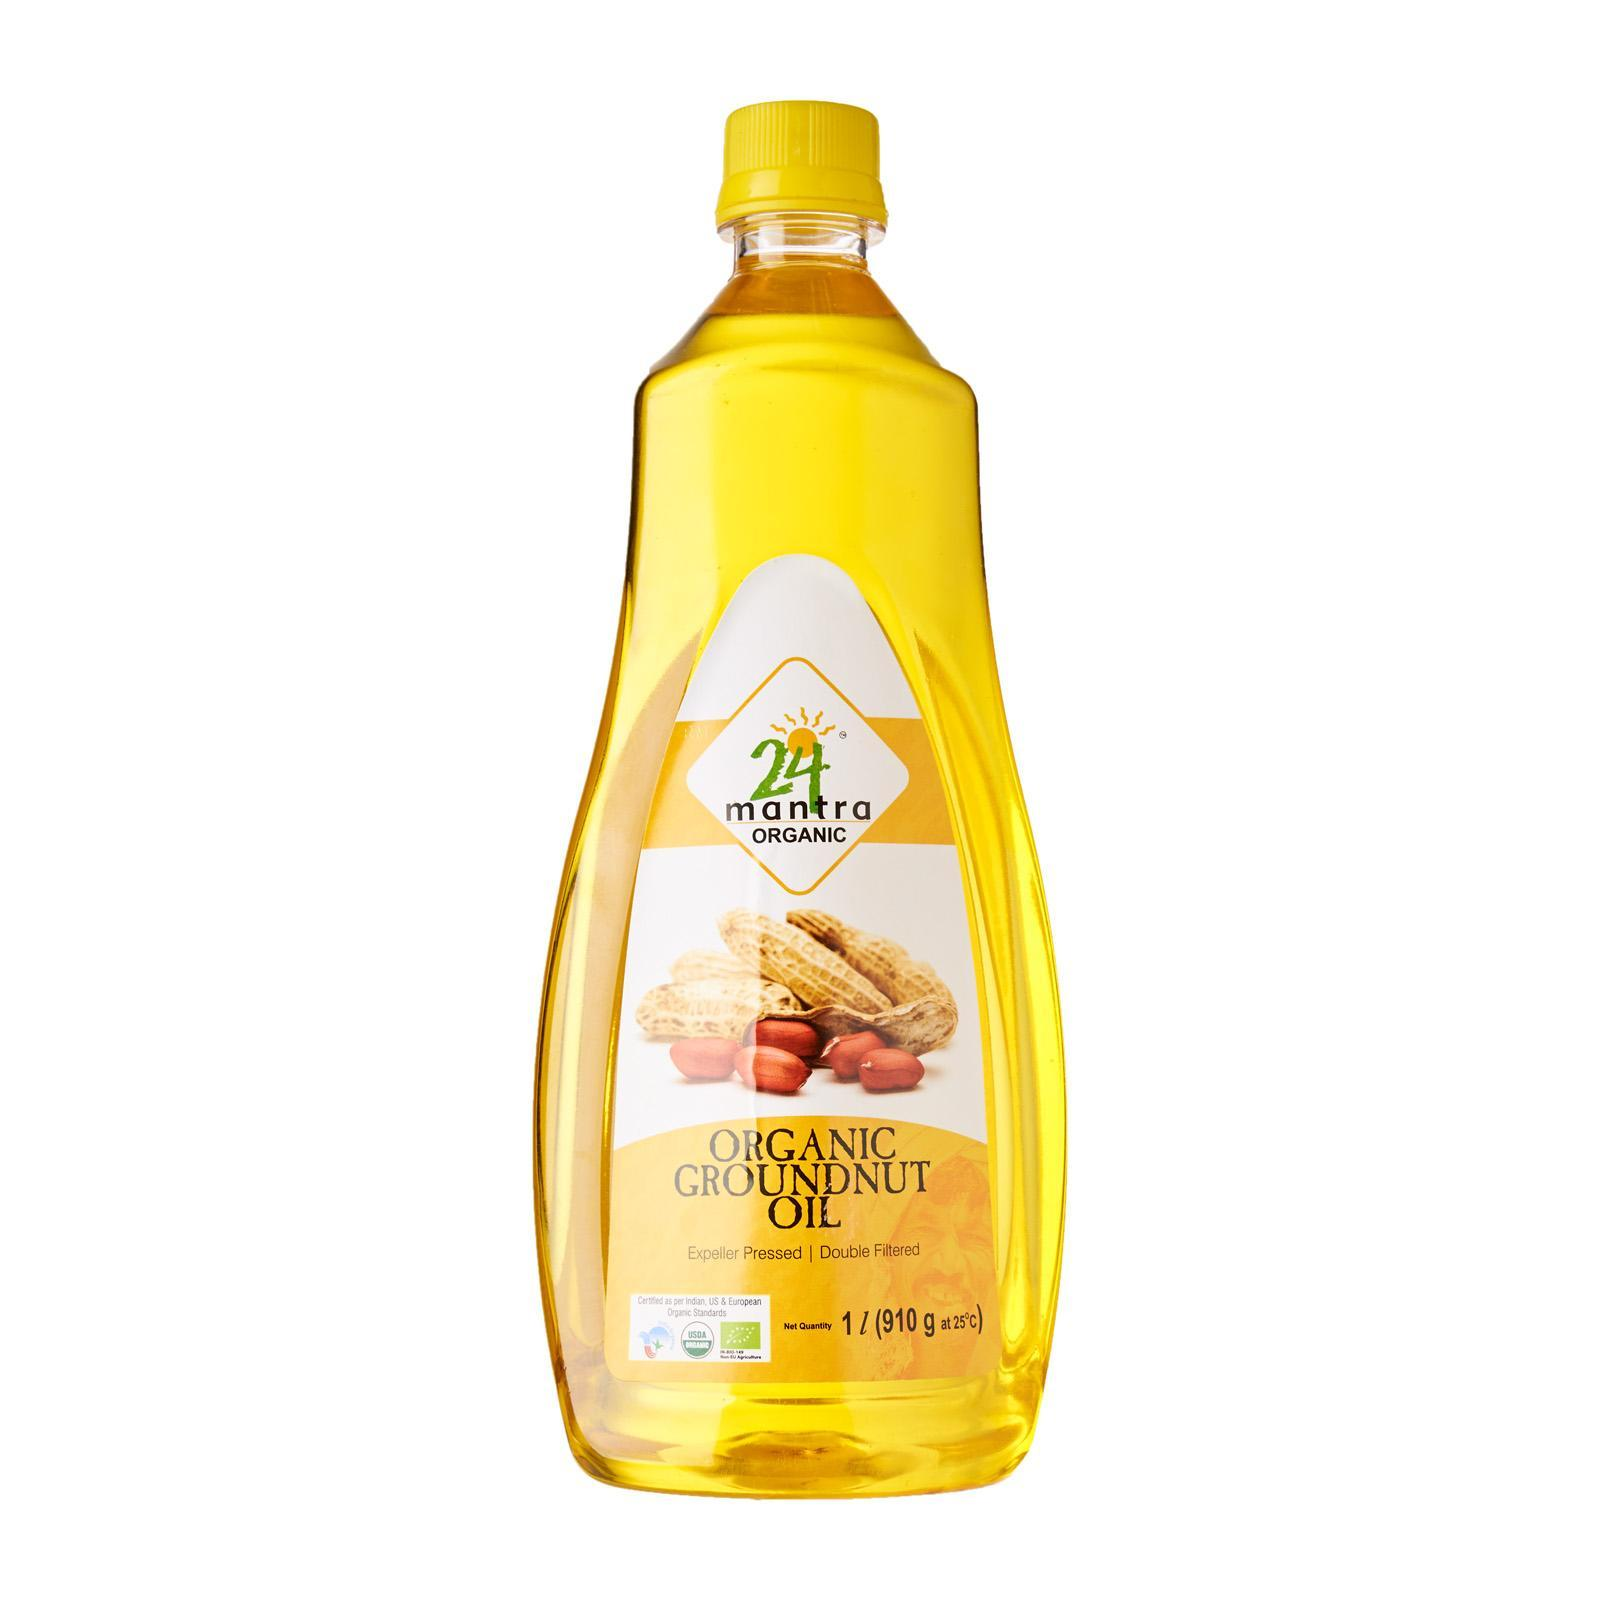 24 Mantra Organic Groundnut Oil By Redmart.